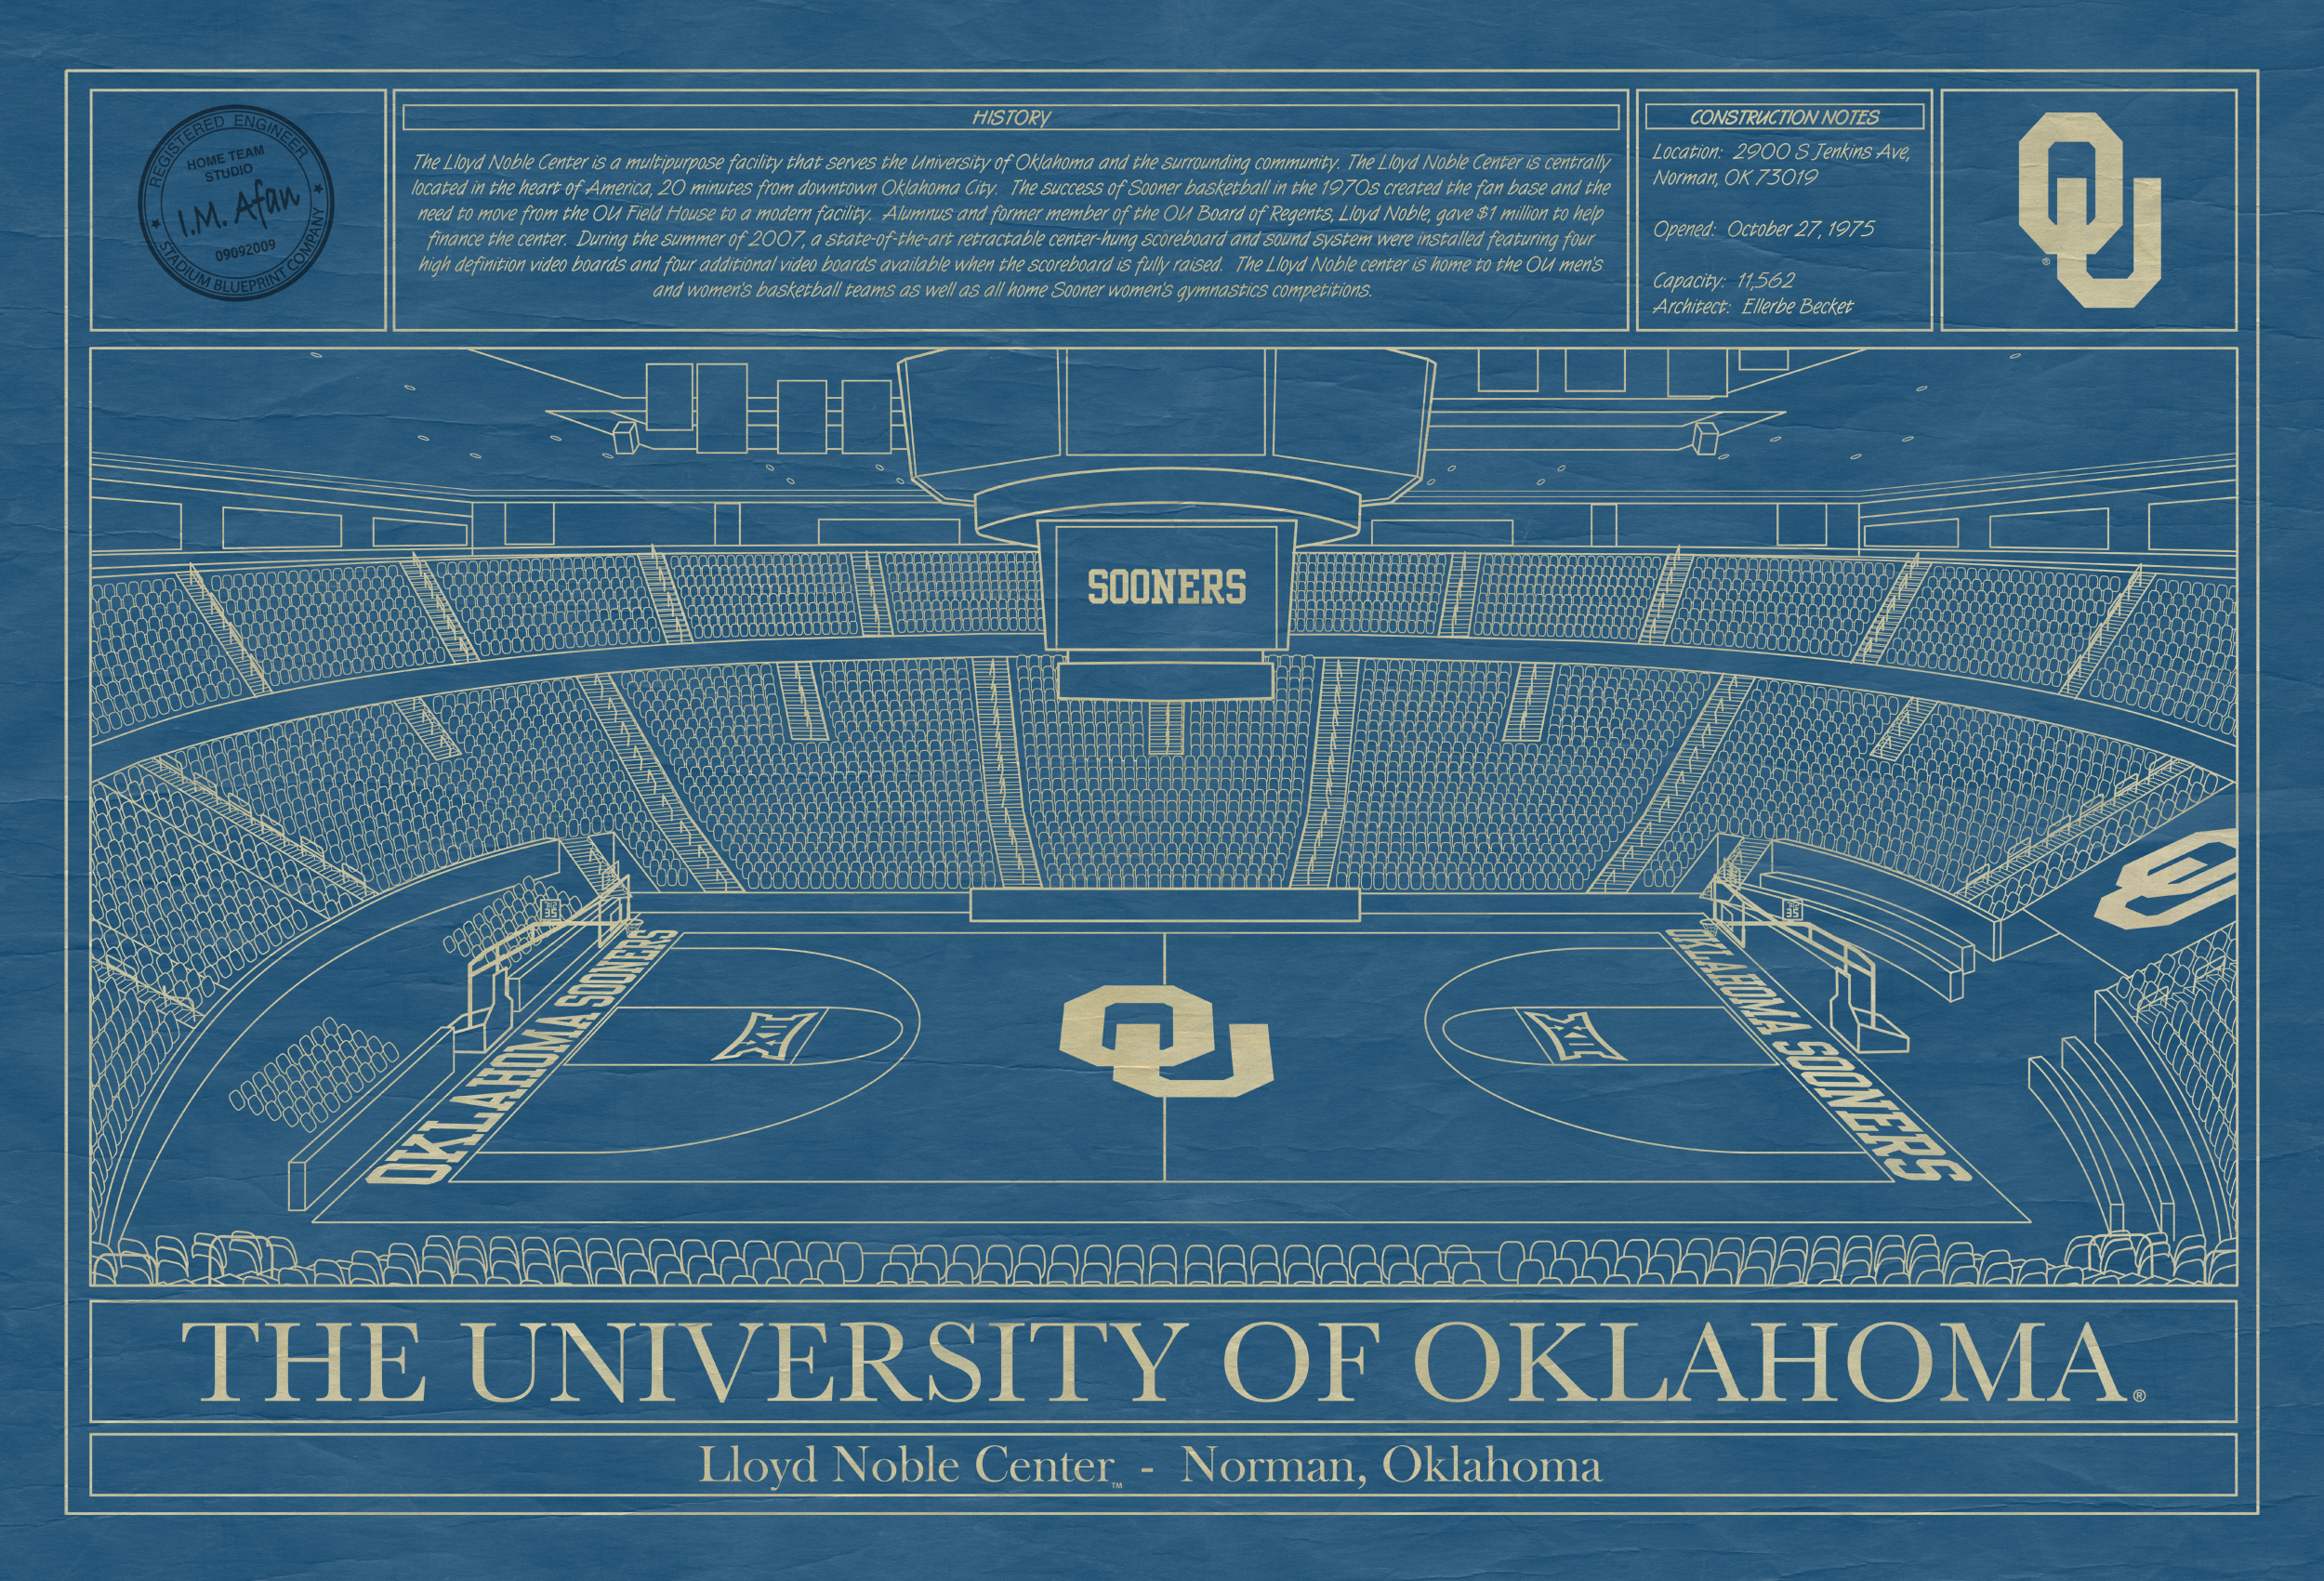 University of oklahoma archives stadium blueprint company oklahoma lloyd noble center blueprint art malvernweather Image collections